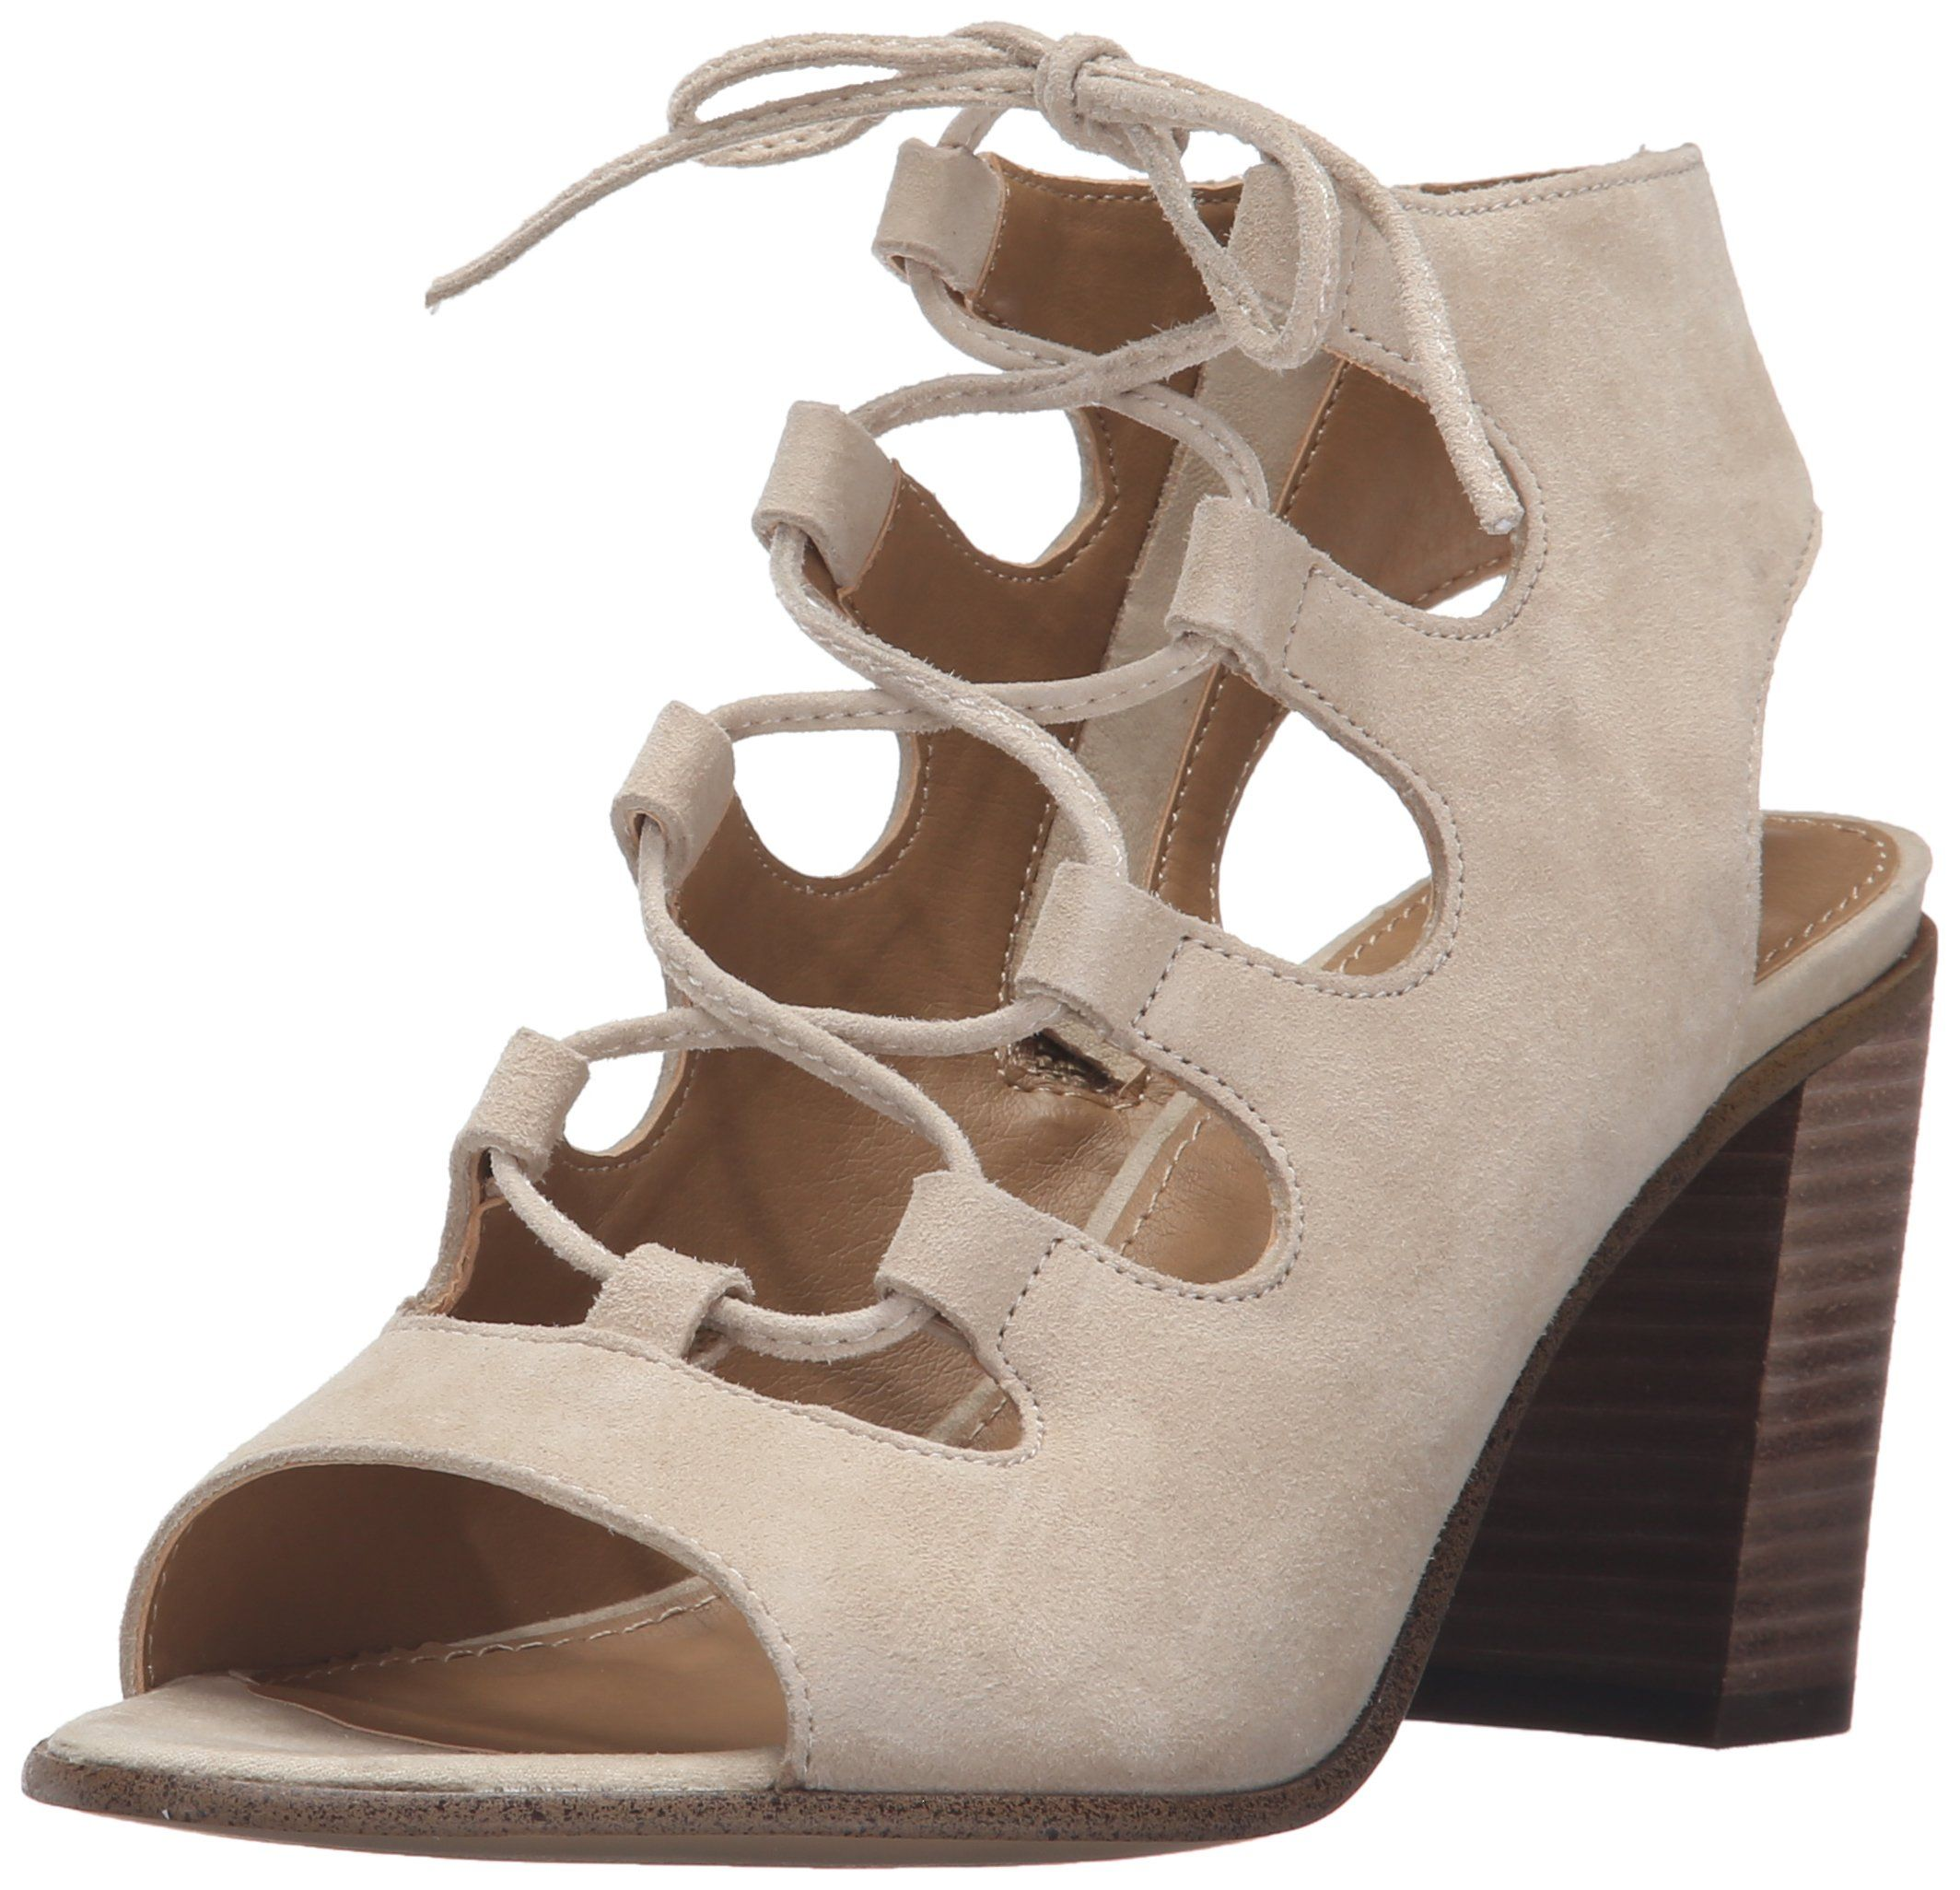 Steve Madden Women's Nilunda dress Sandal, Sand Suede, 8 M US. Mule-inspired sandal featuring peep-toe opening and lace-up vamp. Exposed side zipper. Stacked block heel.